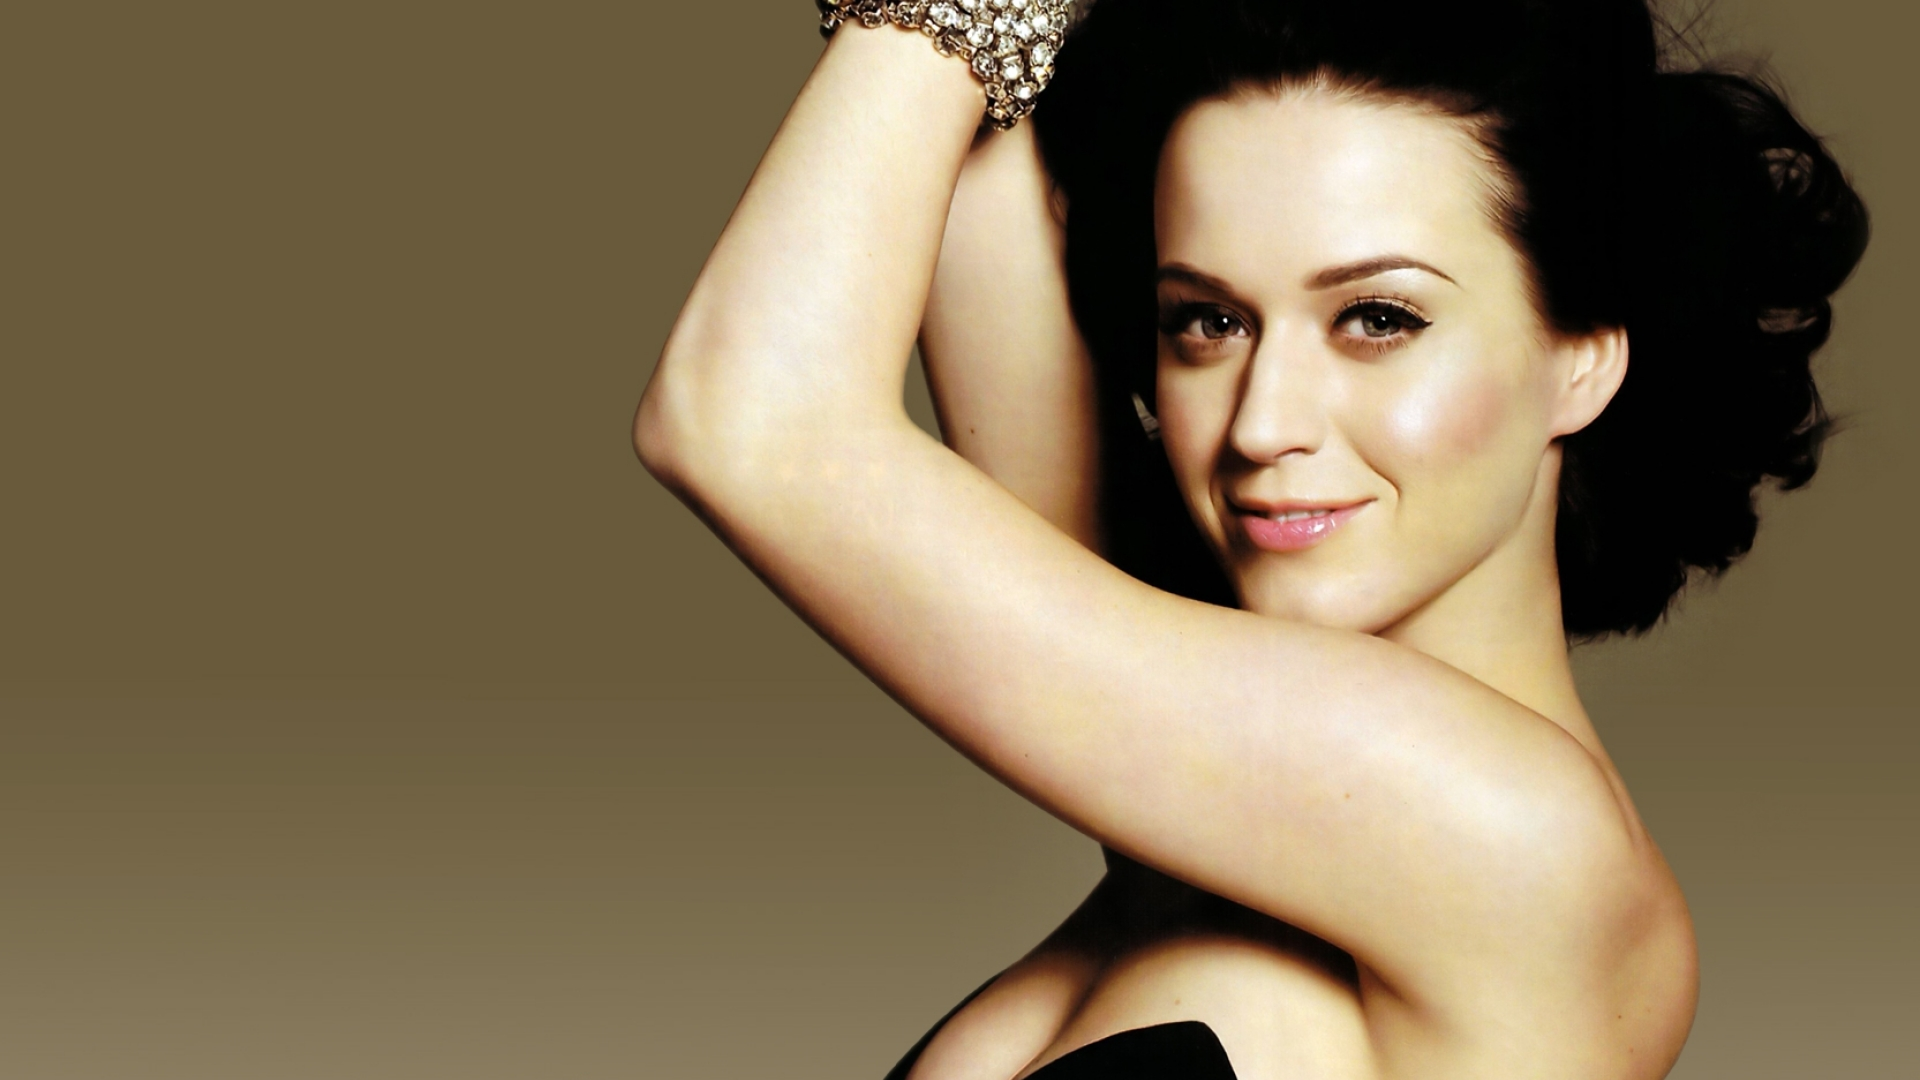 beautiful katy perry wallpaper - hd wallpapers